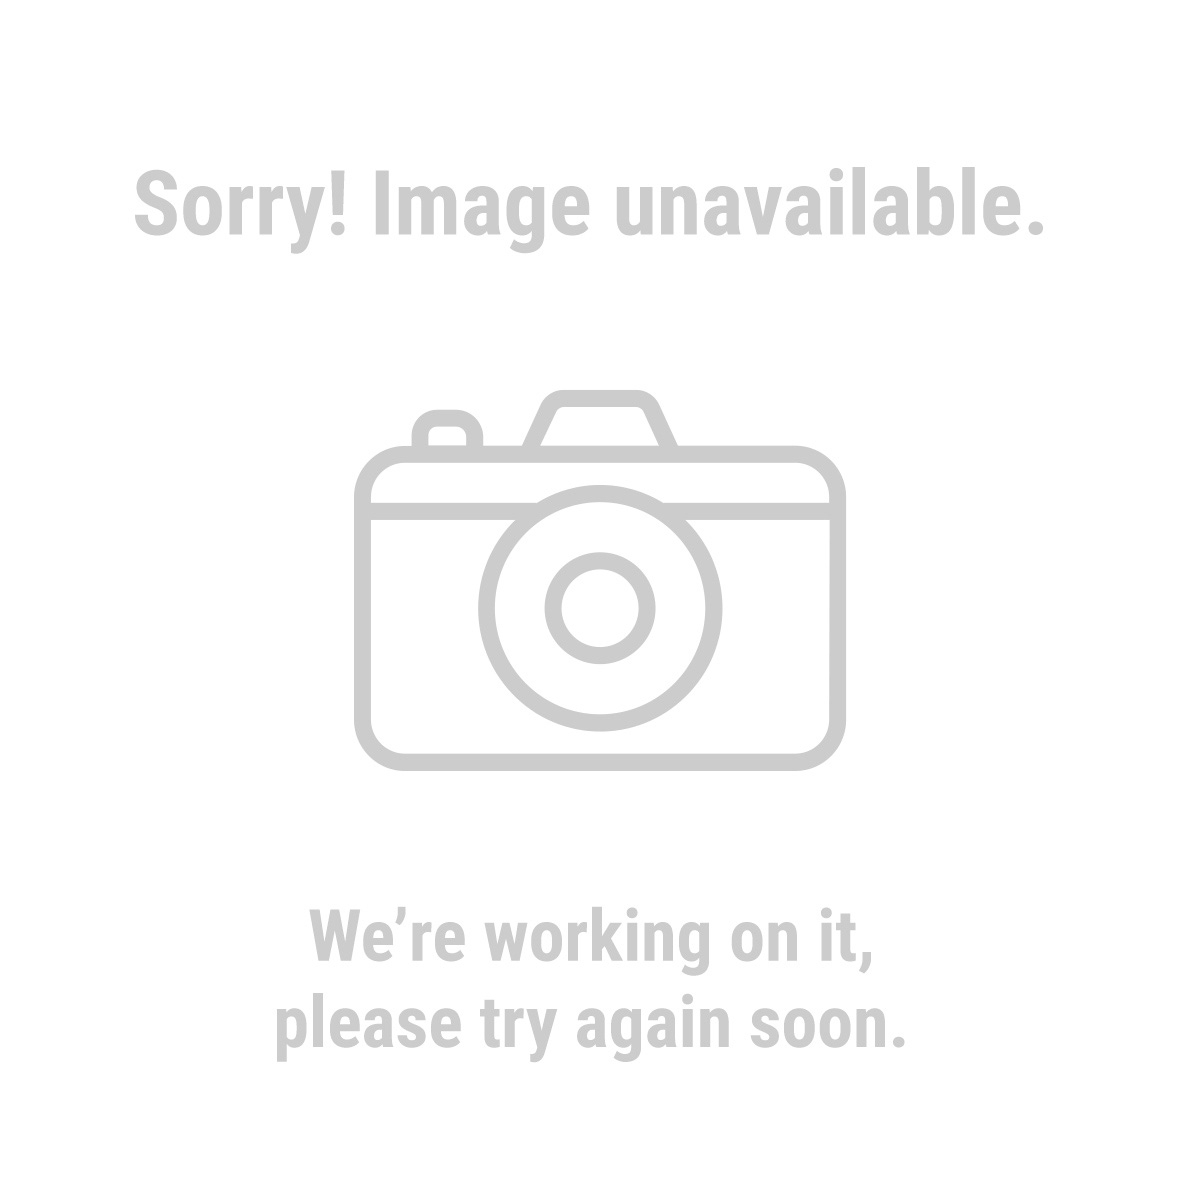 Chicago Electric Welding Systems 68888 70 Amp Arc Welder